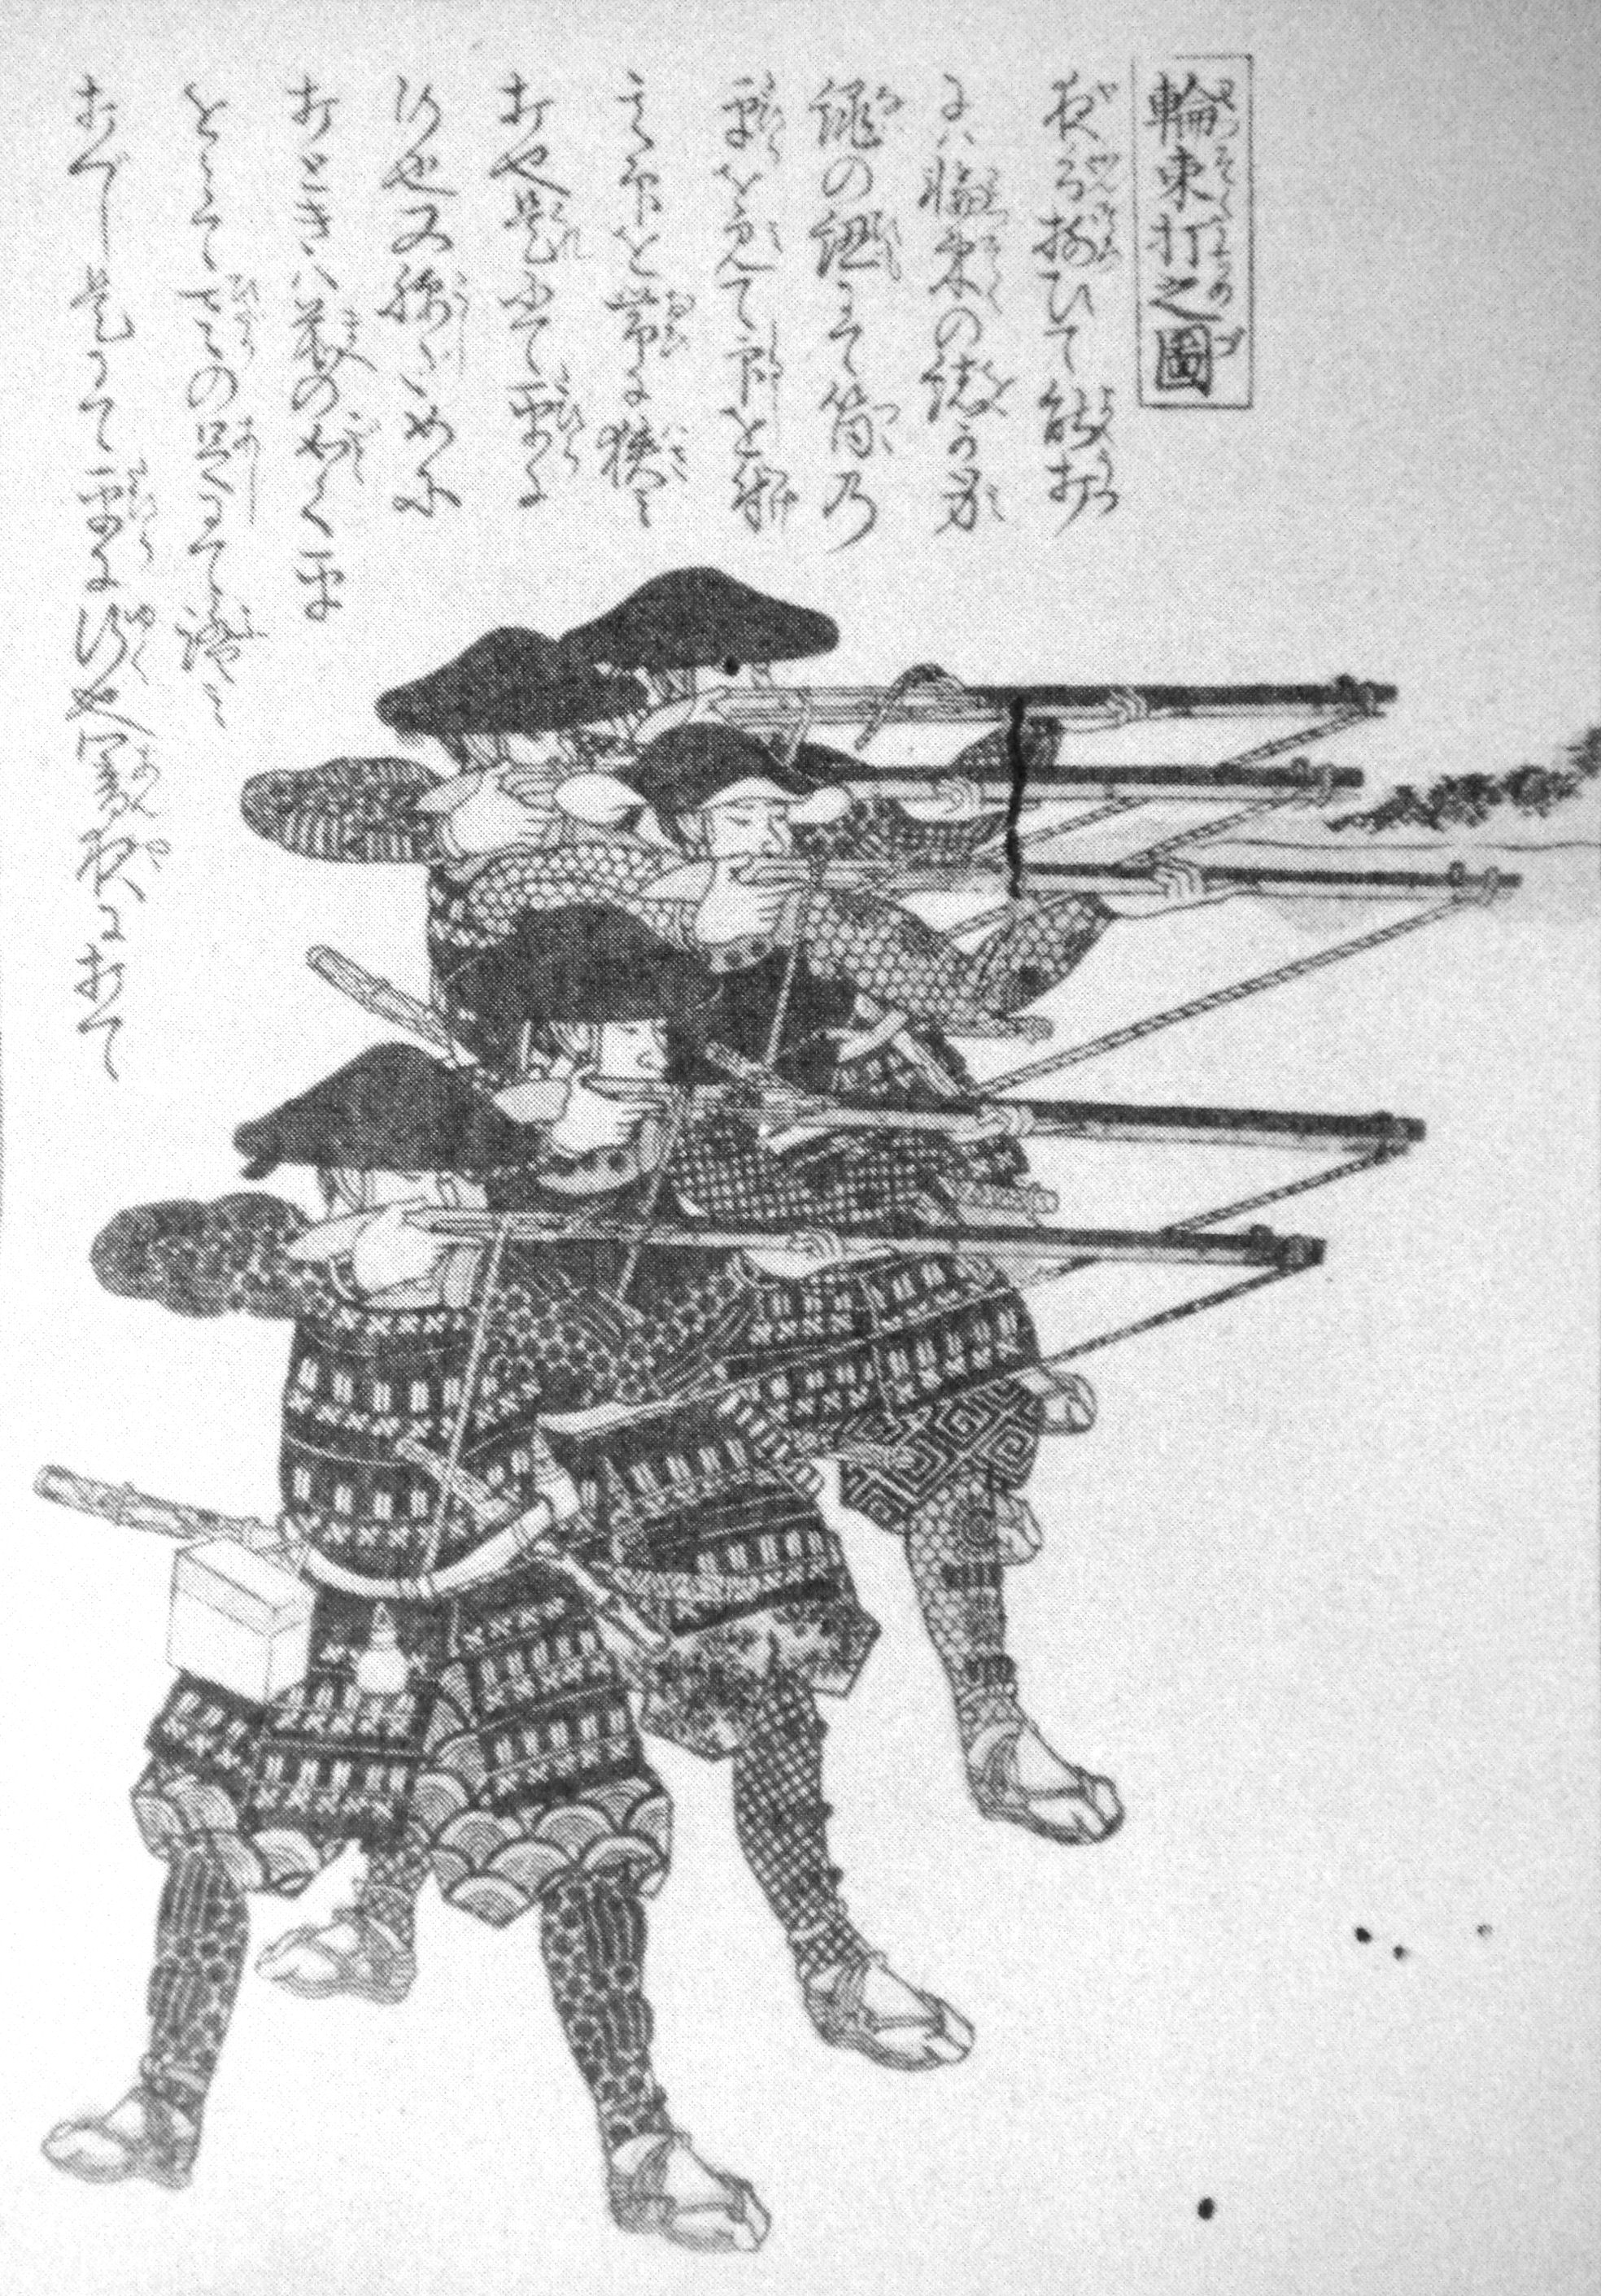 Hyobu-sho (Ministry of the Military) Strings_for_night_firing